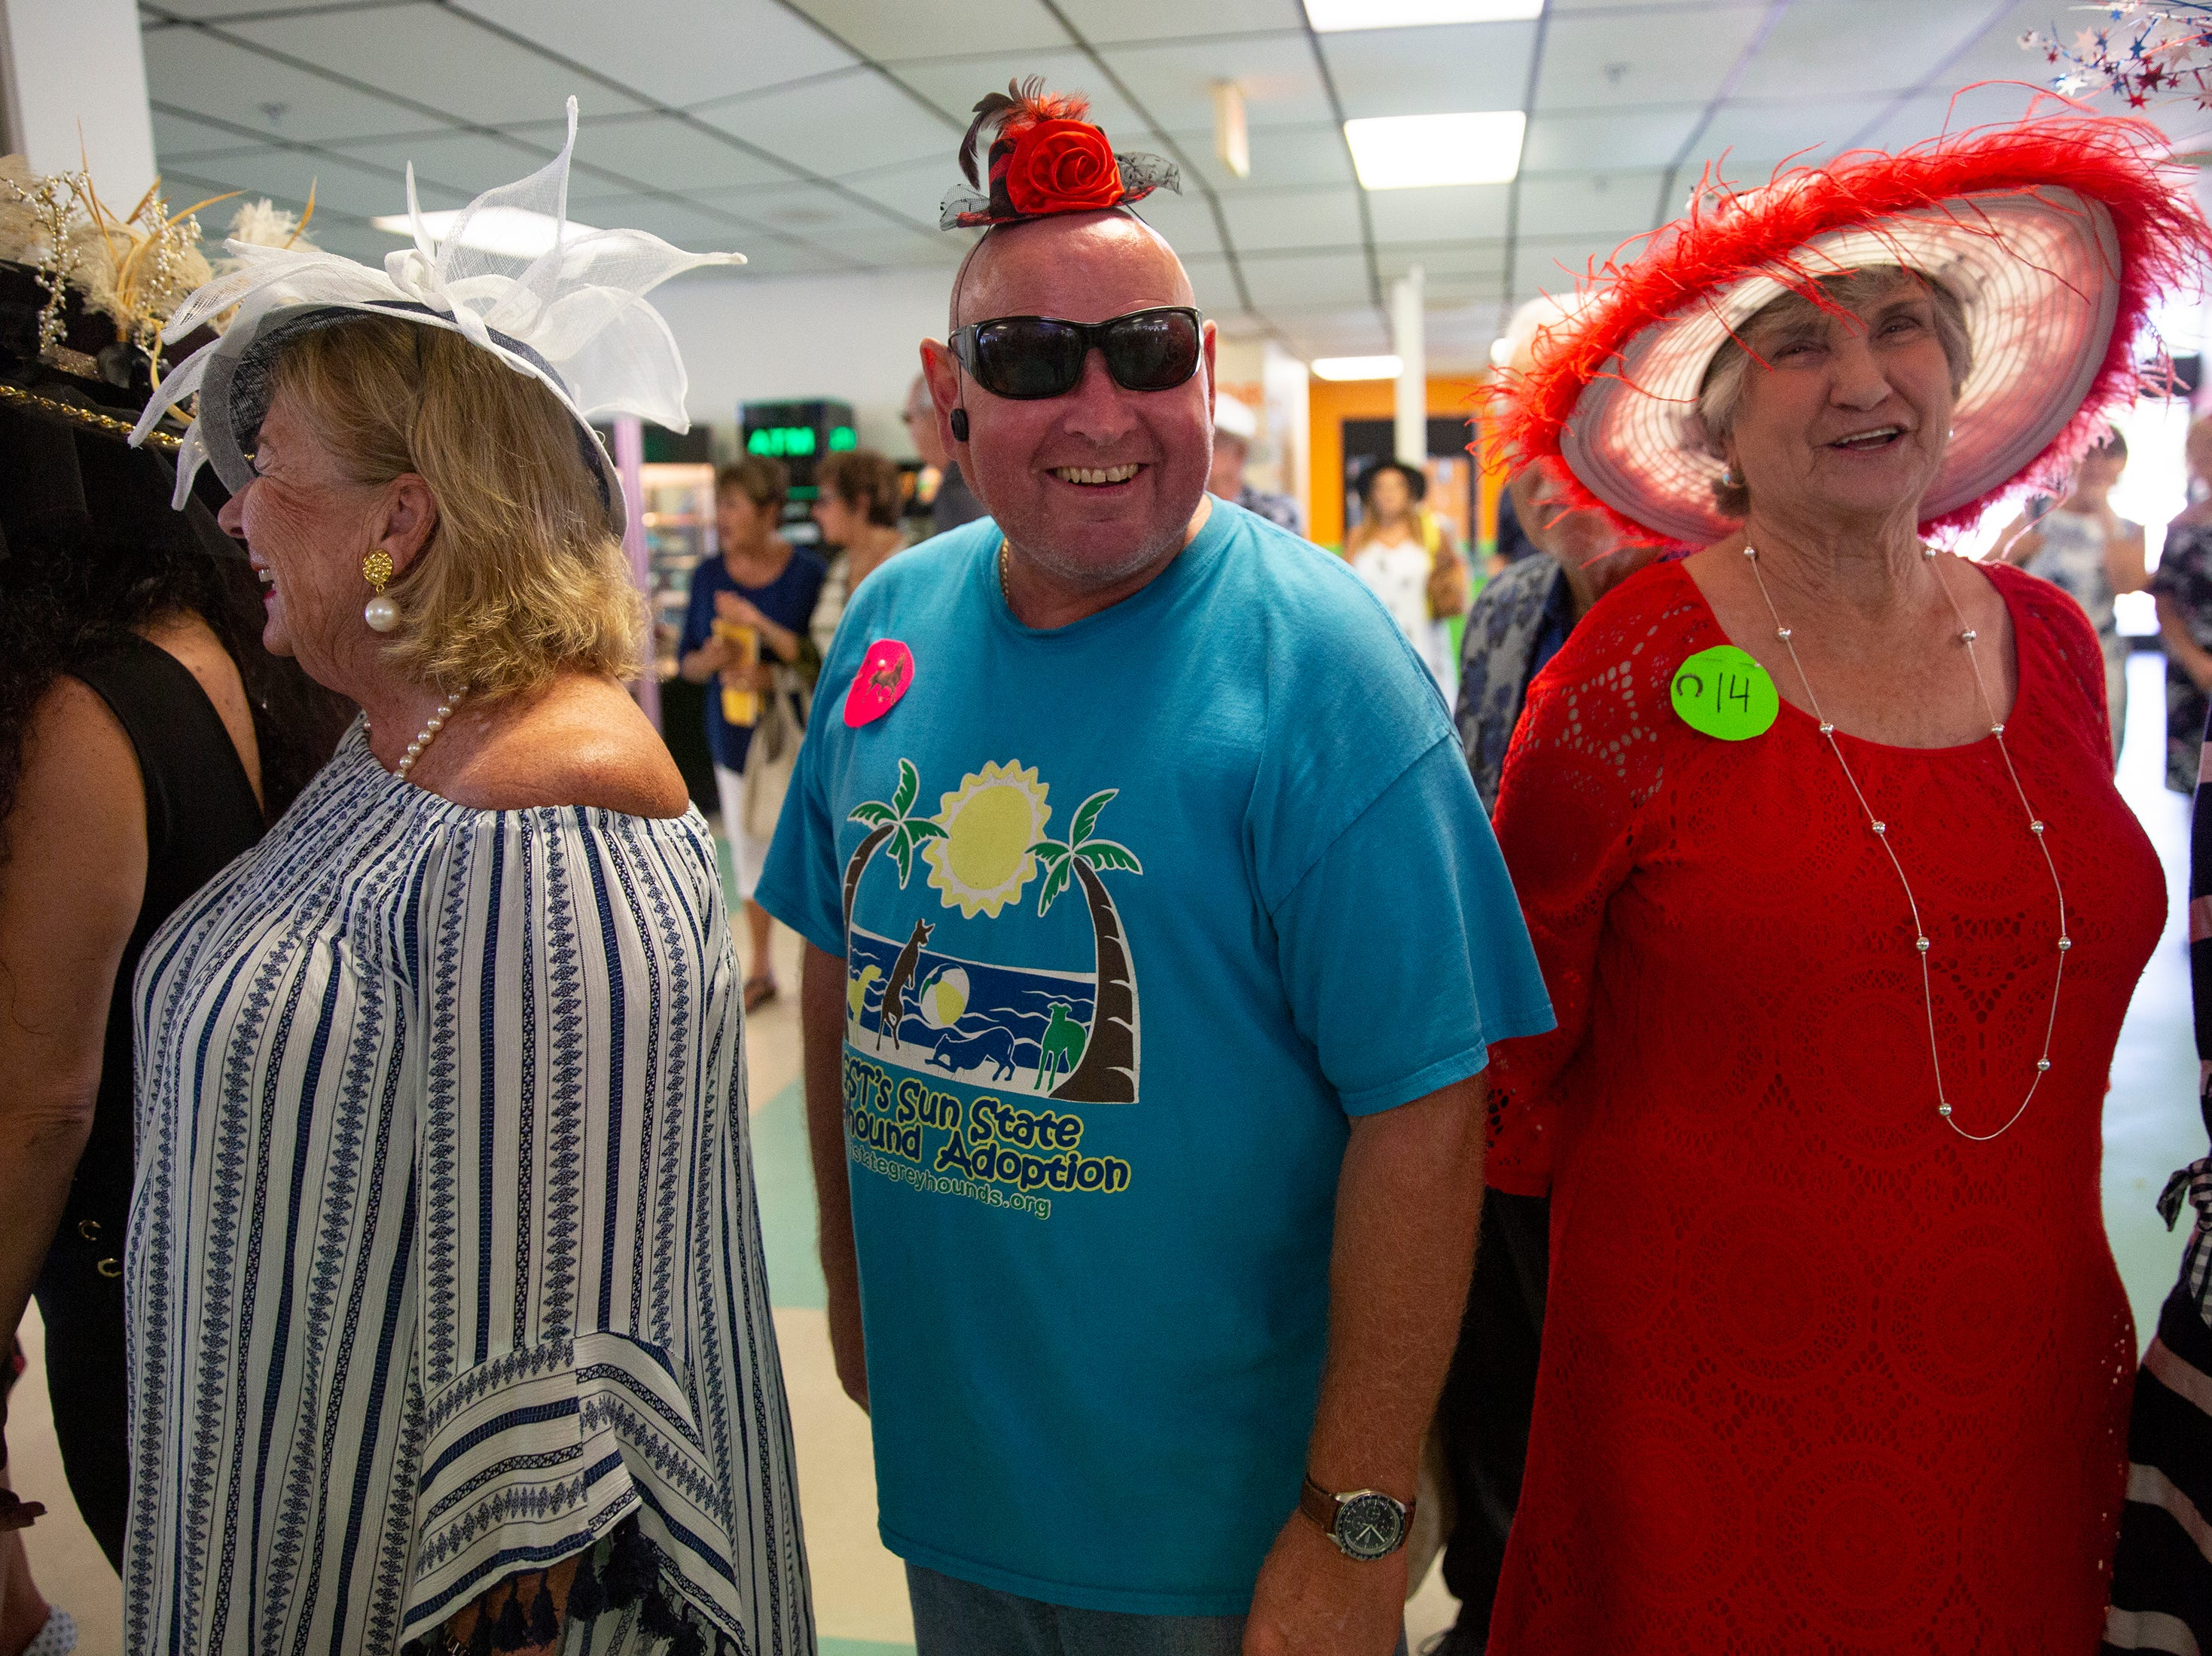 Brian Dippel of Bay City, Florida, enters the annual Best Derby Hat competition with a tiny hat, Saturday, May 4, 2019, at Naples Fort Myers Greyhound Racing and Poker in Bonita Springs.